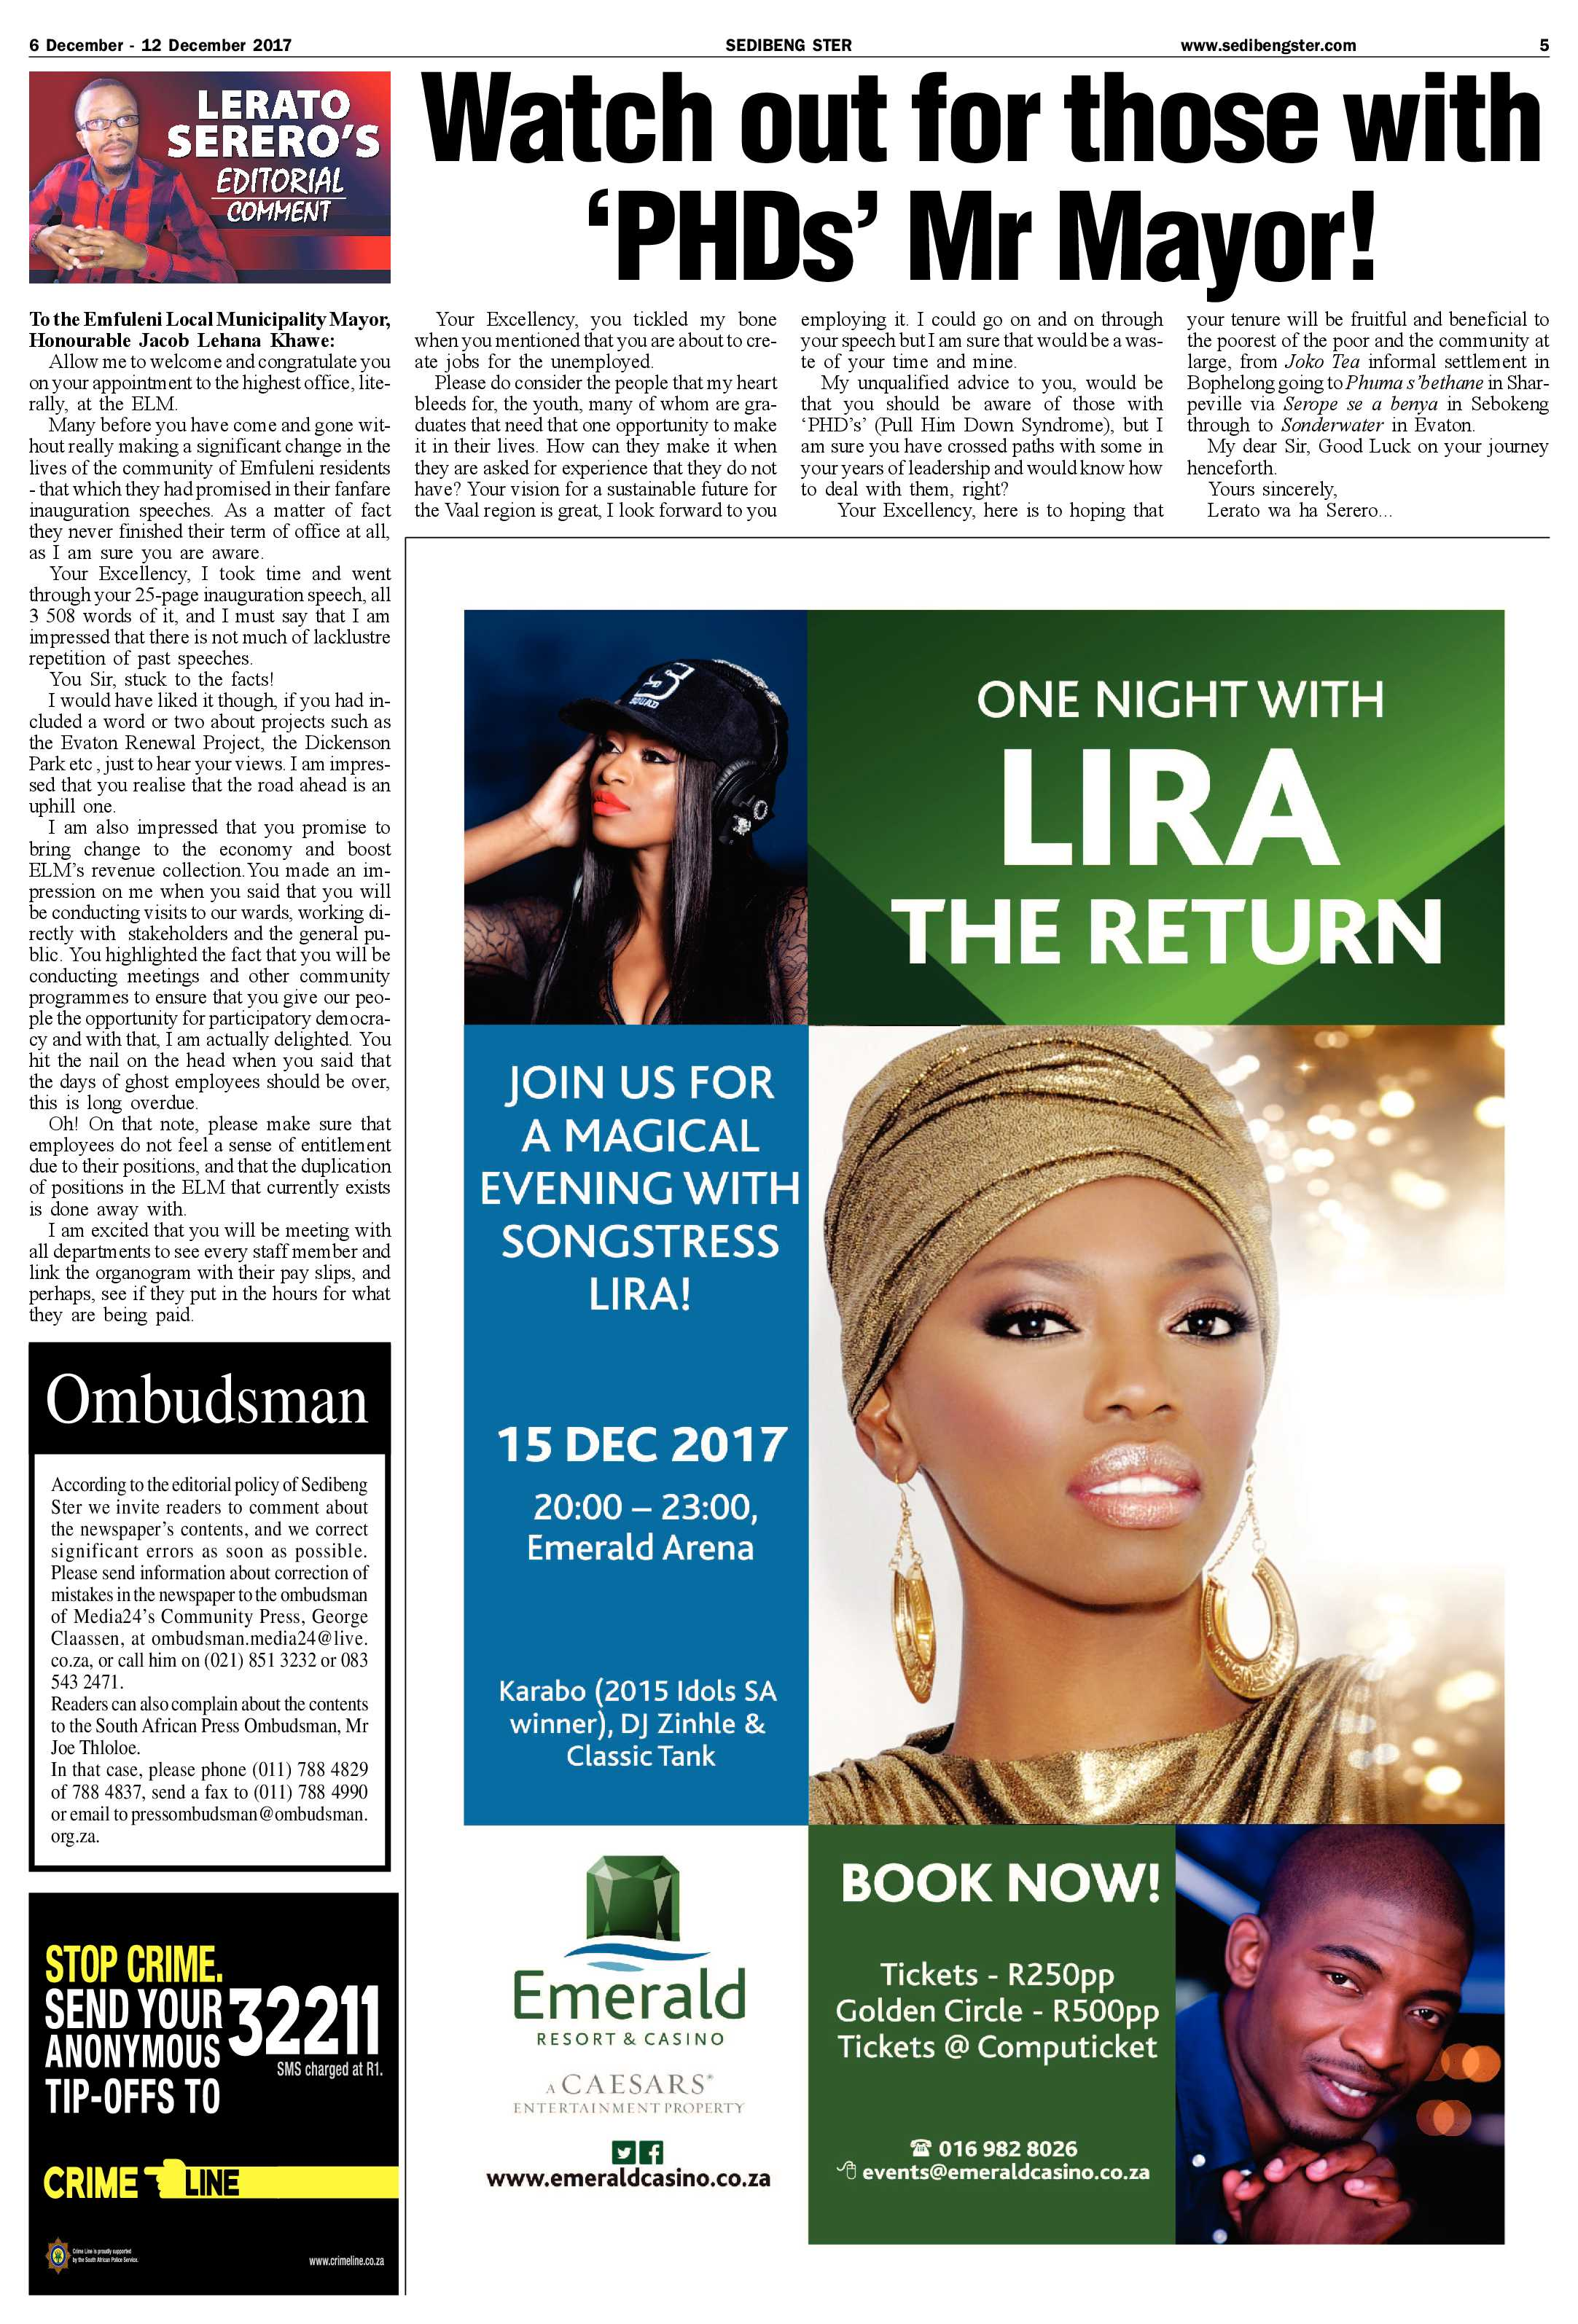 sedibeng-ster-6-12-december-2017-epapers-page-5